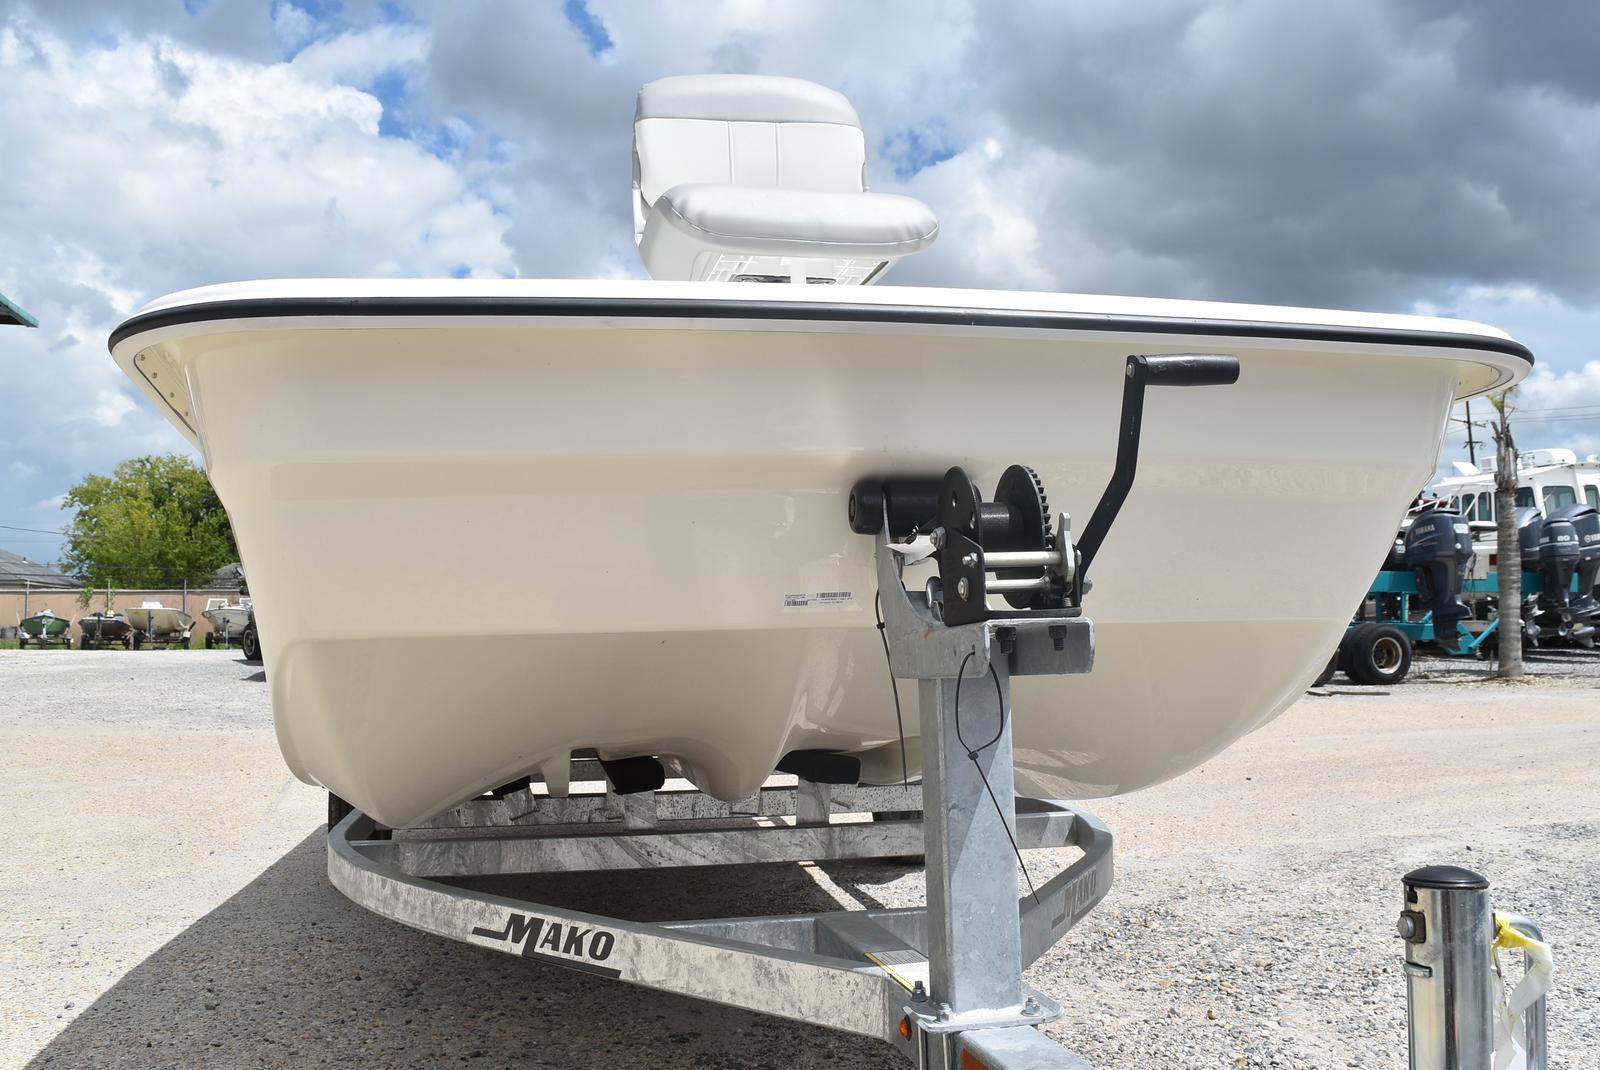 2020 Mako boat for sale, model of the boat is Pro Skiff 17, 75 ELPT & Image # 336 of 702